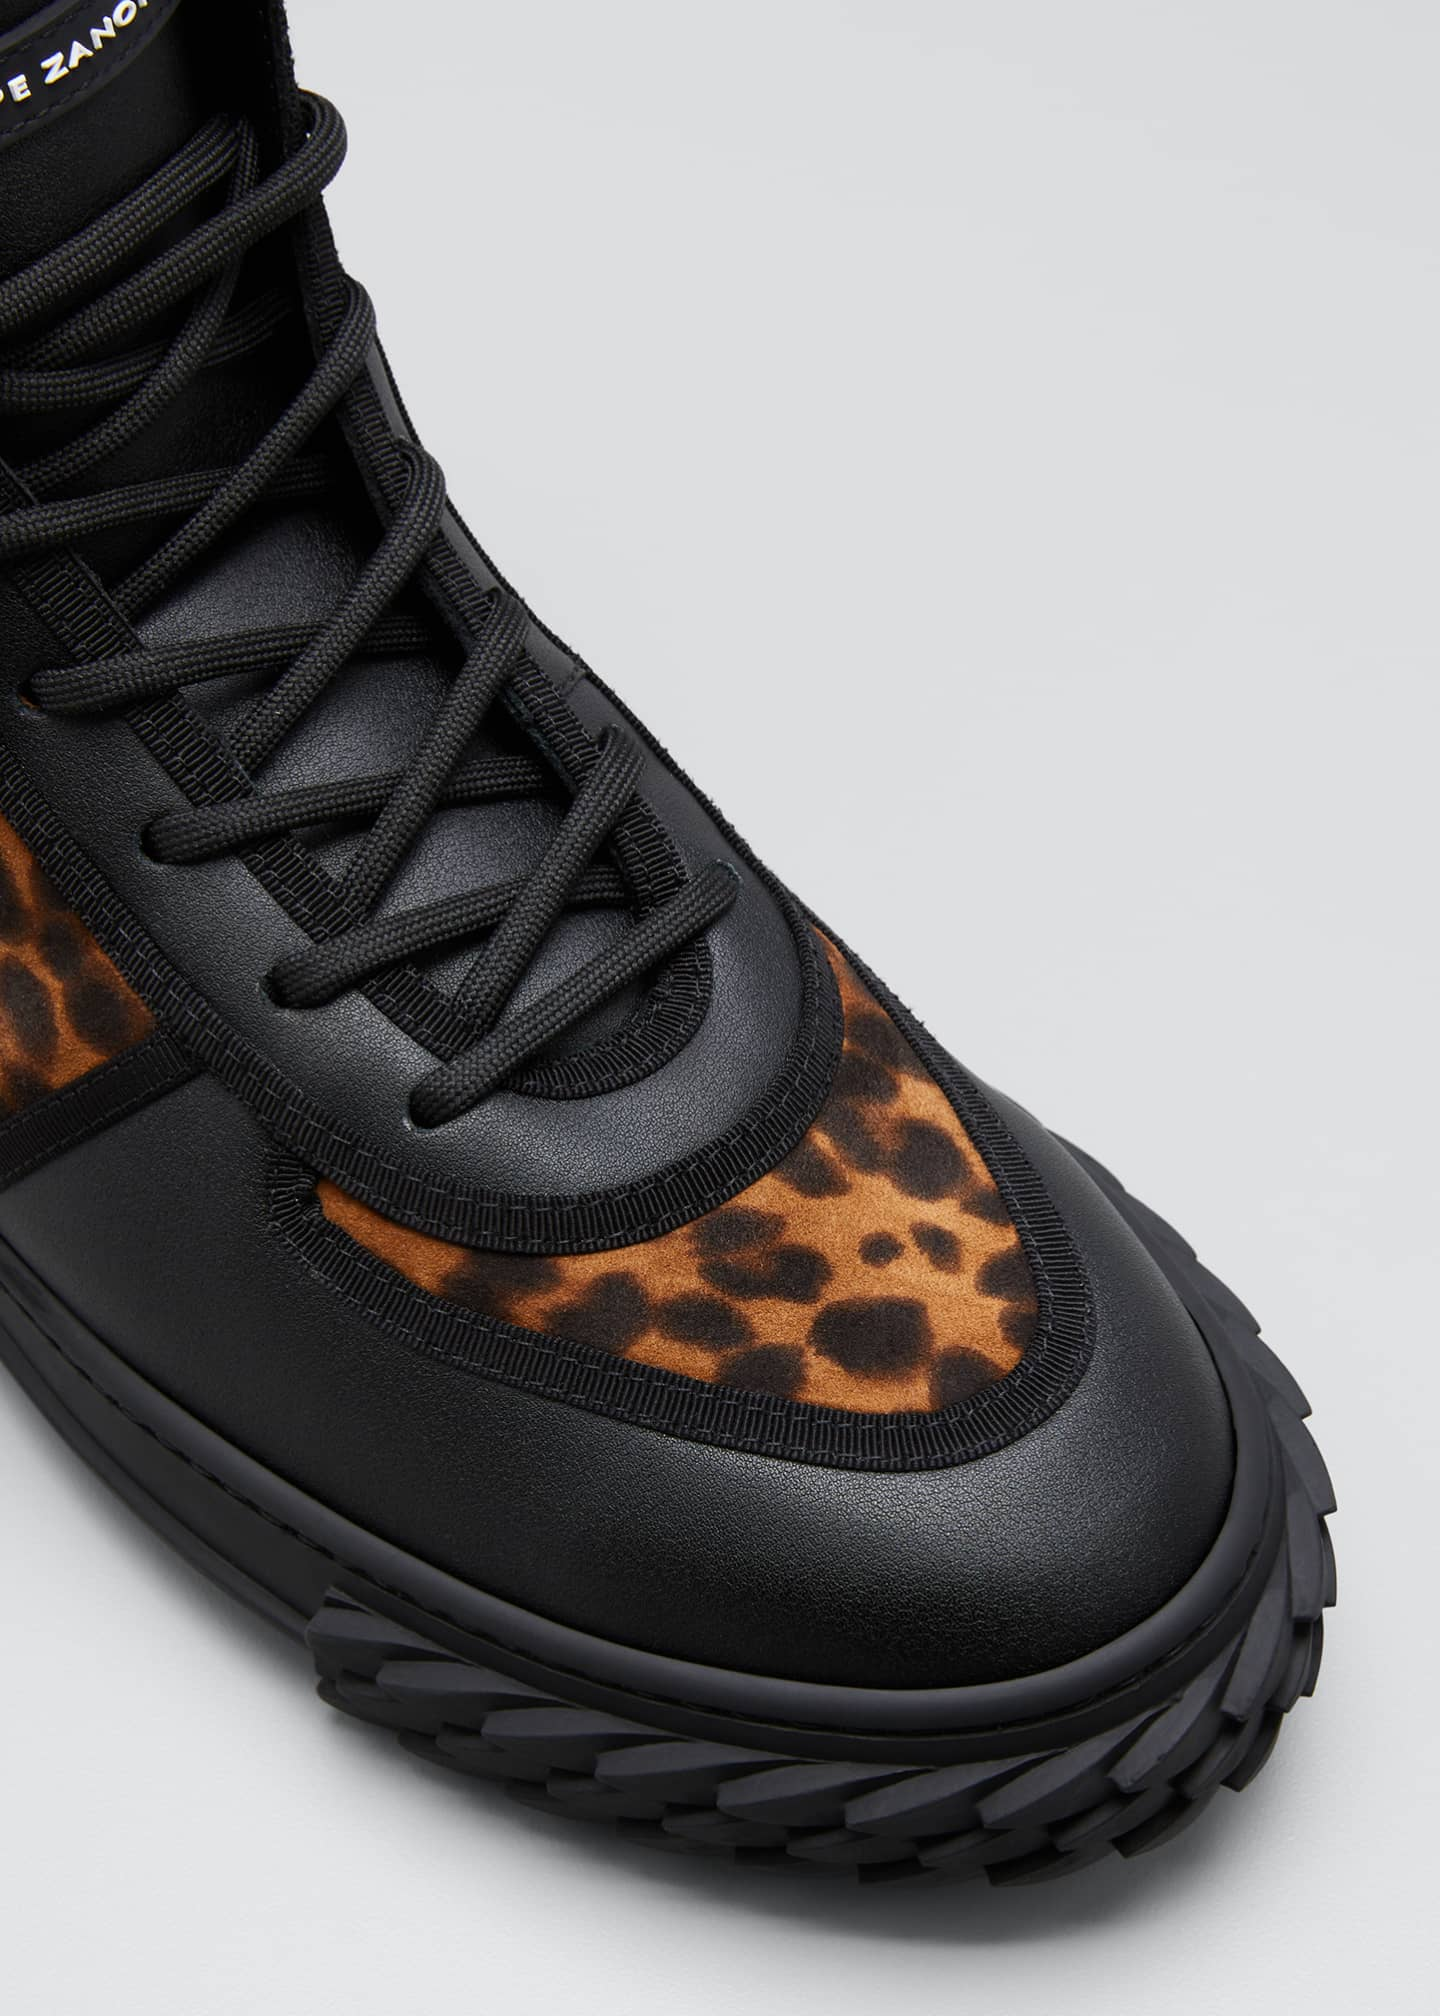 Image 3 of 3: Men's Blabber Leopard-Print Silk/Leather High-Top Sneakers